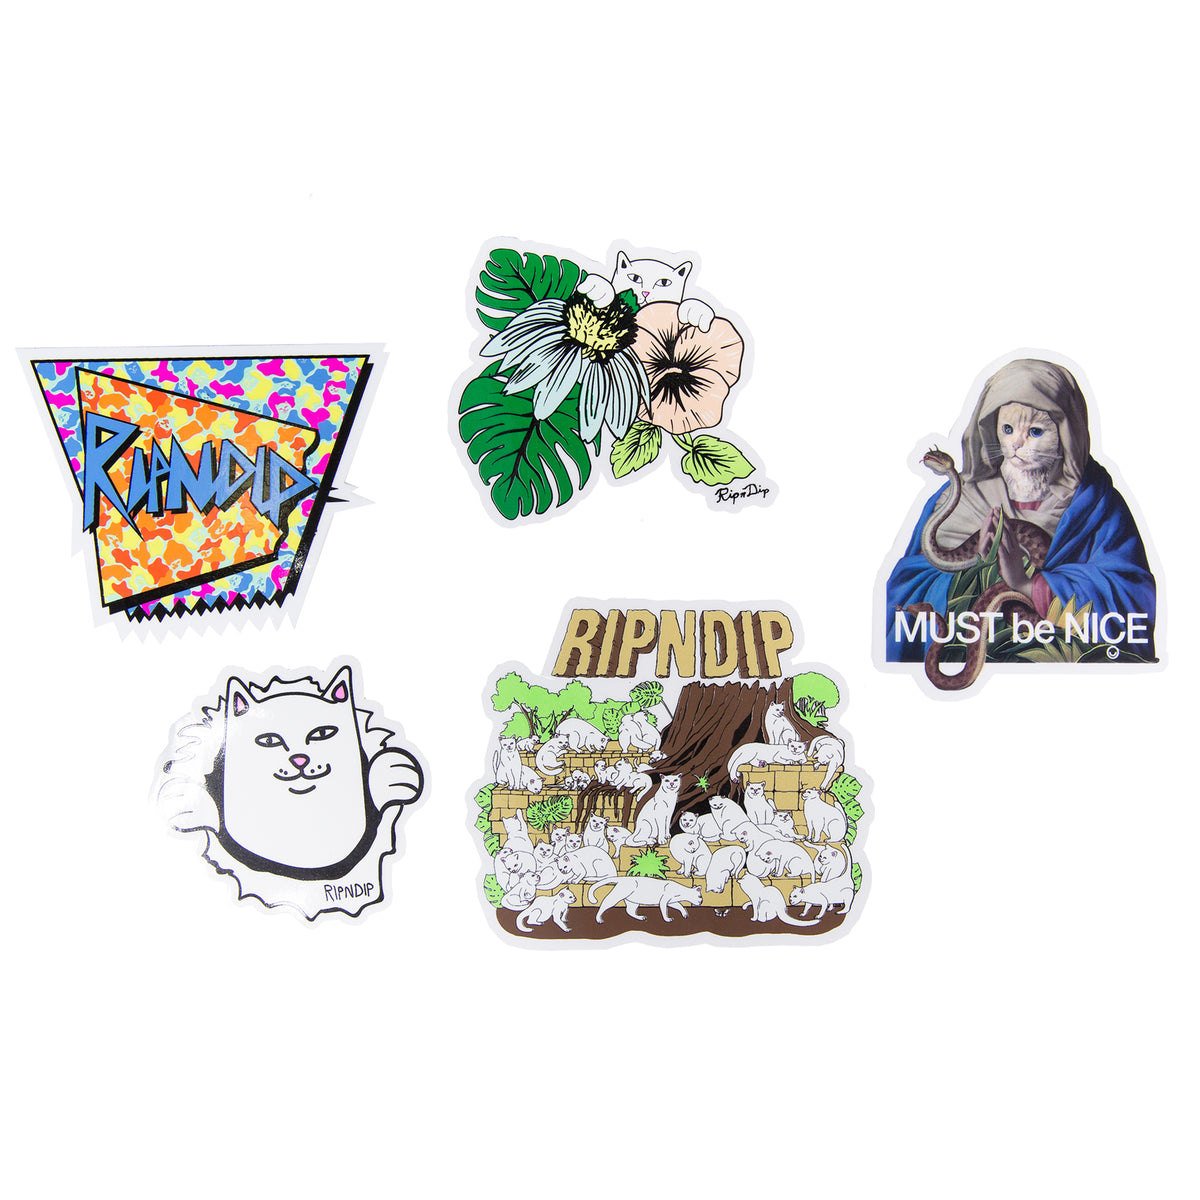 Summer 18 Sticker Pack Ripndip